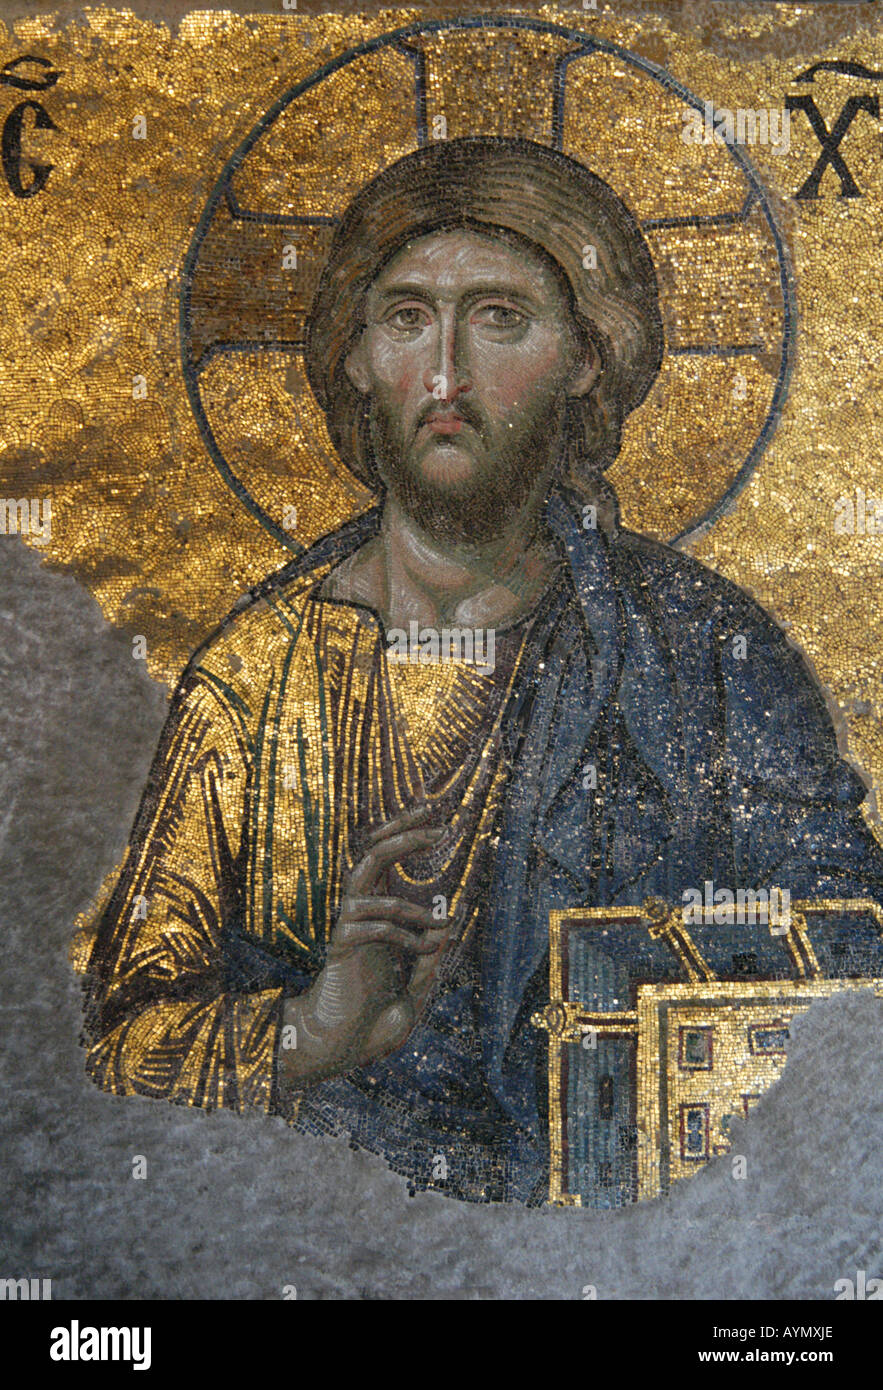 Jesus Christ depicted in the Byzantine mosaic in the interior of Hagia Sophia in Istanbul, Turkey Stock Photo